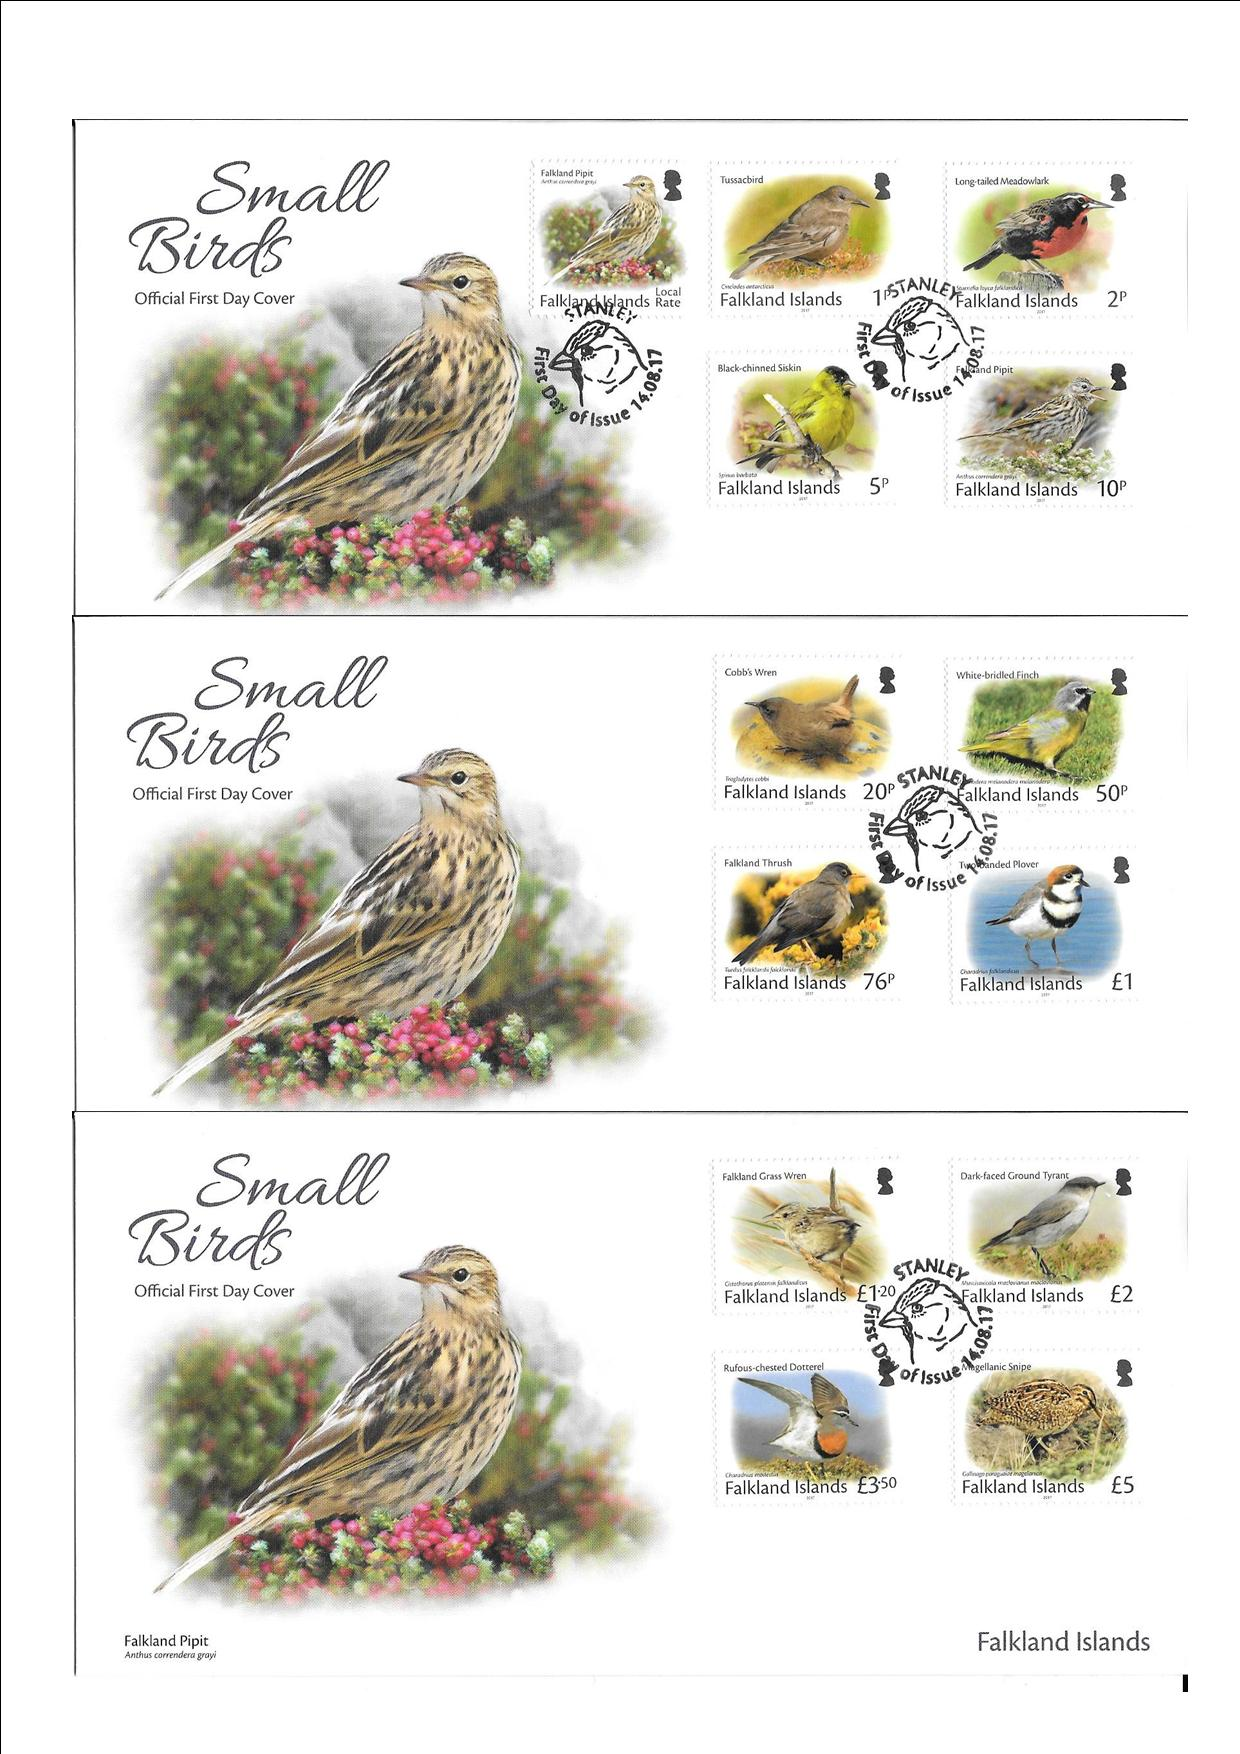 Small Birds Definitive Set First Day Covers